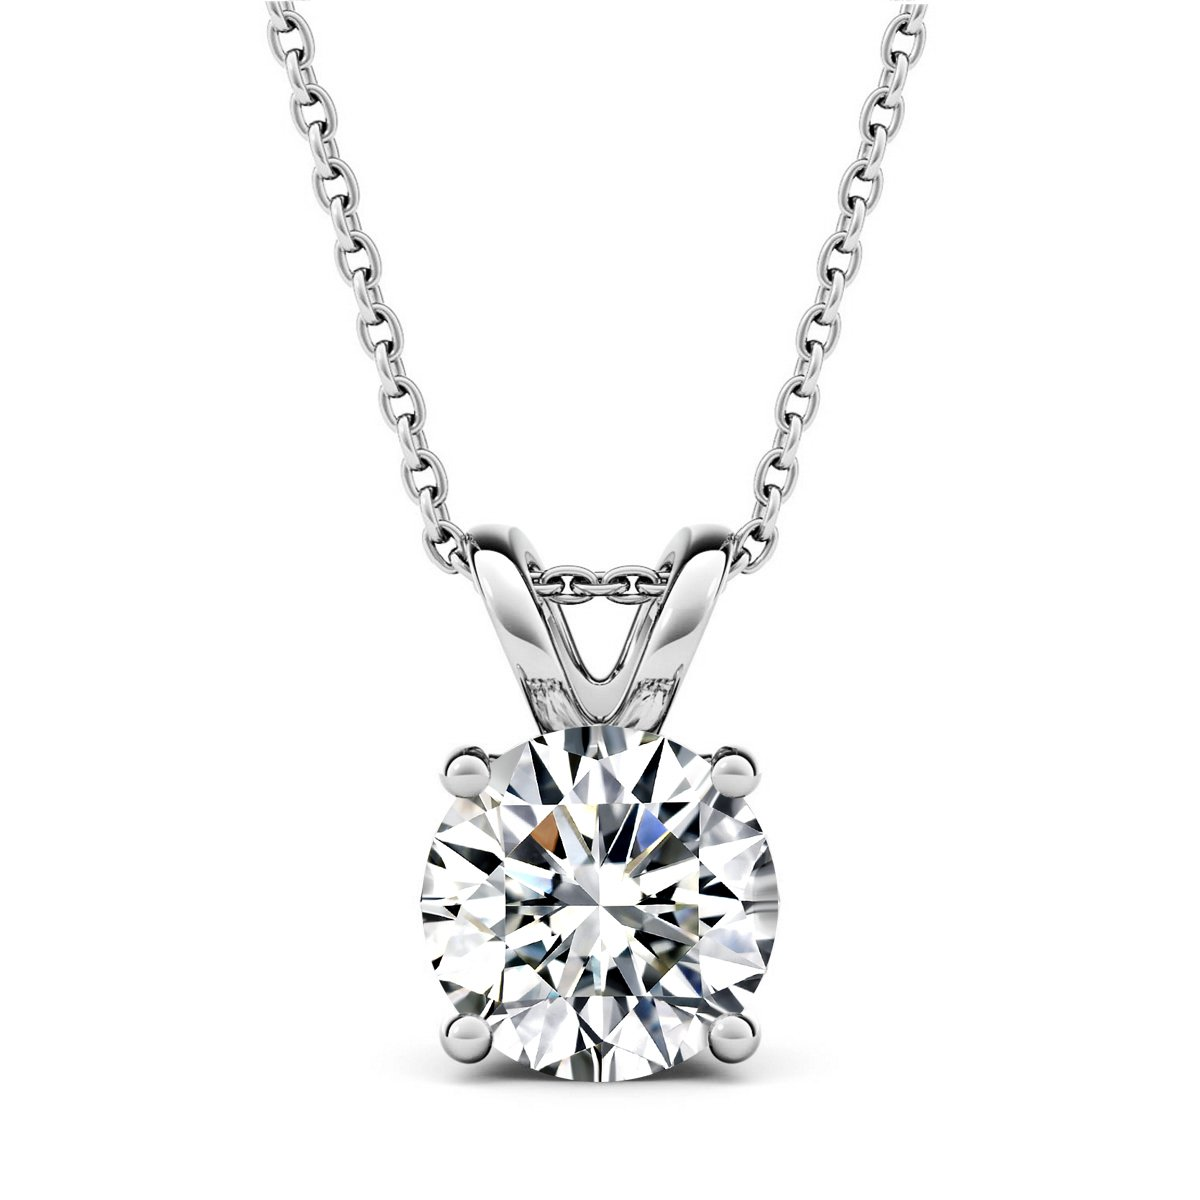 AllenCOCO 14K Gold Plated 2.0 Carat (D Color, VVS Clarity) Simulated Diamond CZ Solitaire Silver Pendant Necklace 16'' - 18''